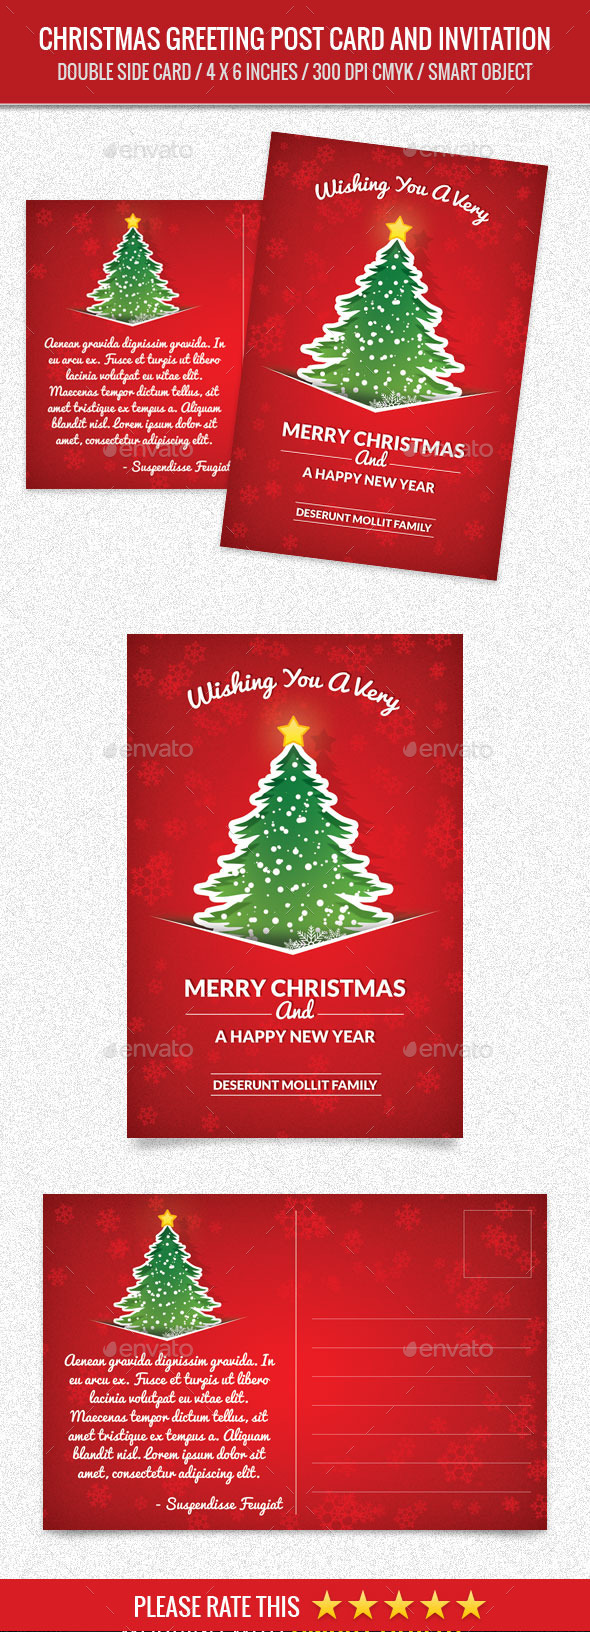 Christmas Greeting and New Year Post Card